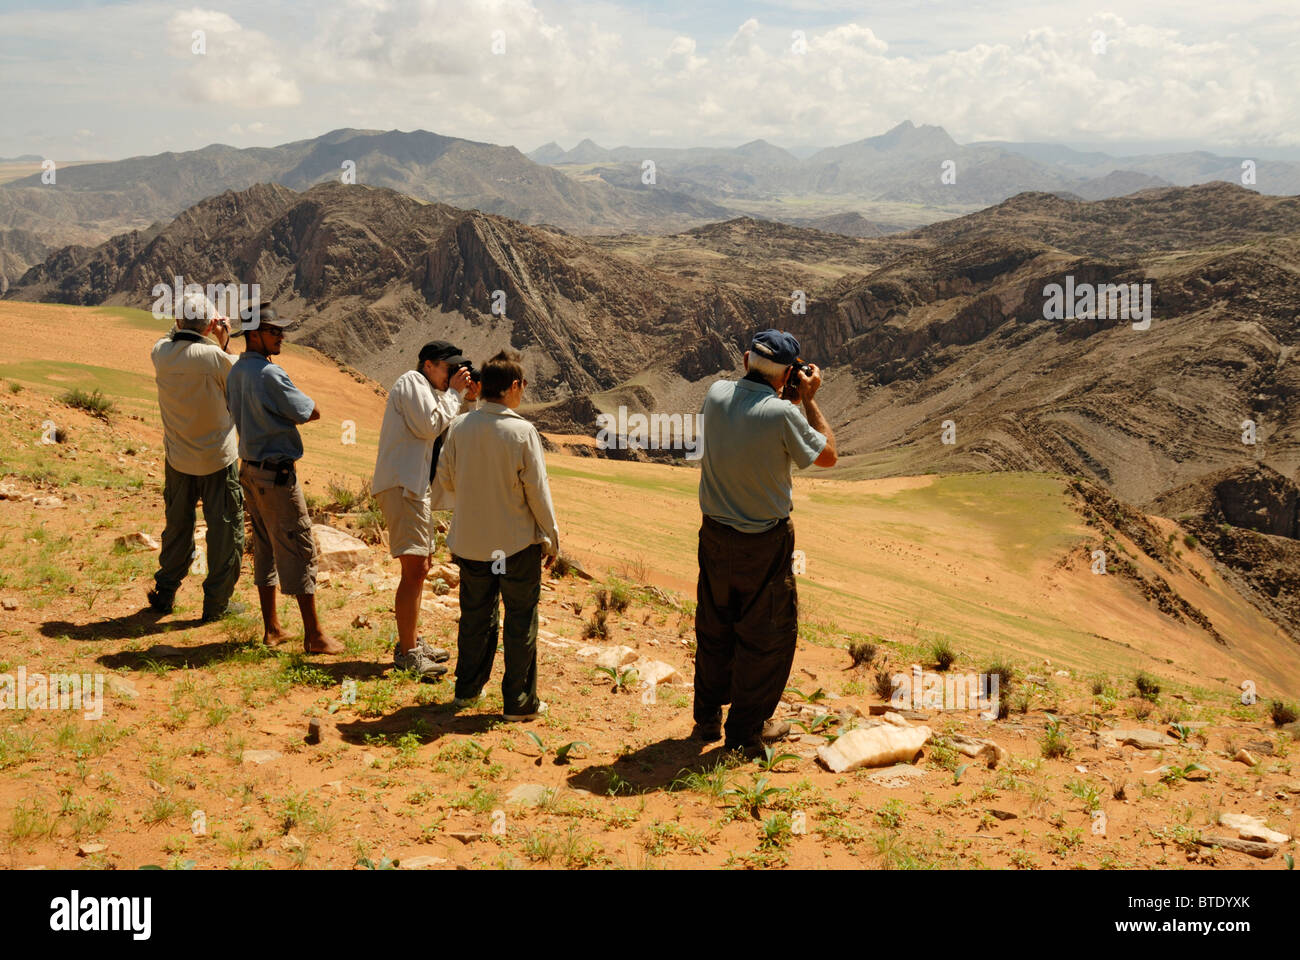 Tourists looking at Kunene River valley, Serra Cafema Mountains and Angola in background - Stock Image